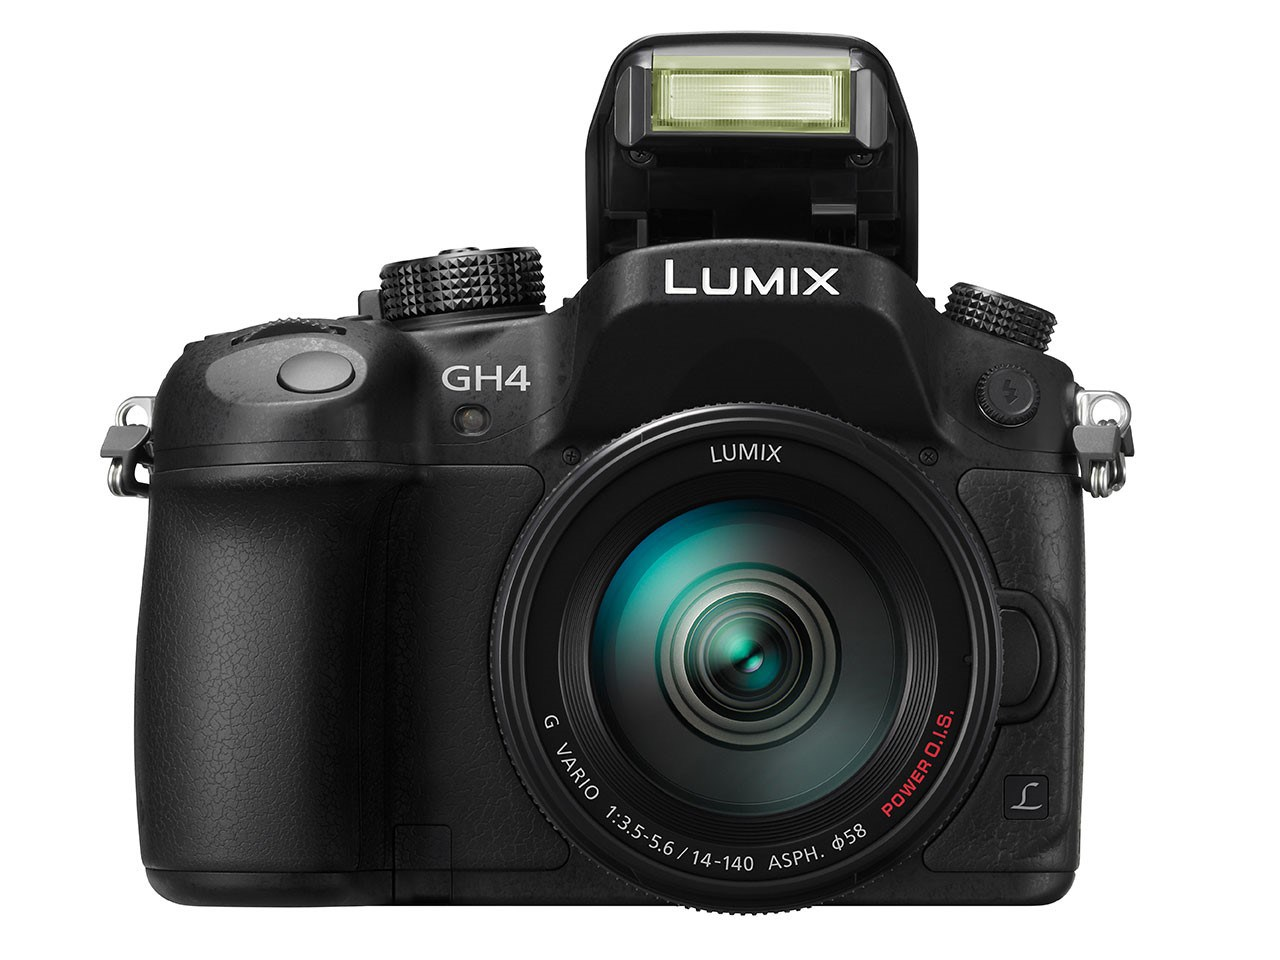 Panasonic GH5 sensor might be in 16-megapixels resolution